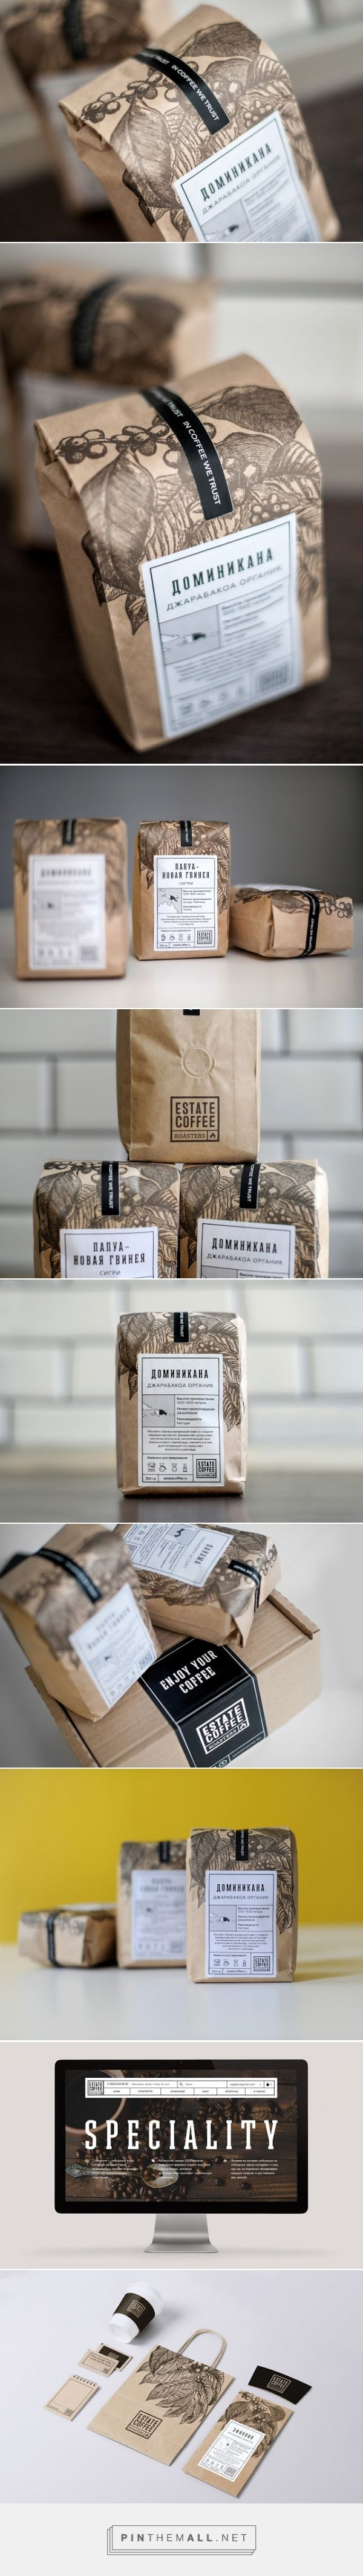 Estate Coffee Roasters packaging designed by AHEAD (Russia)…